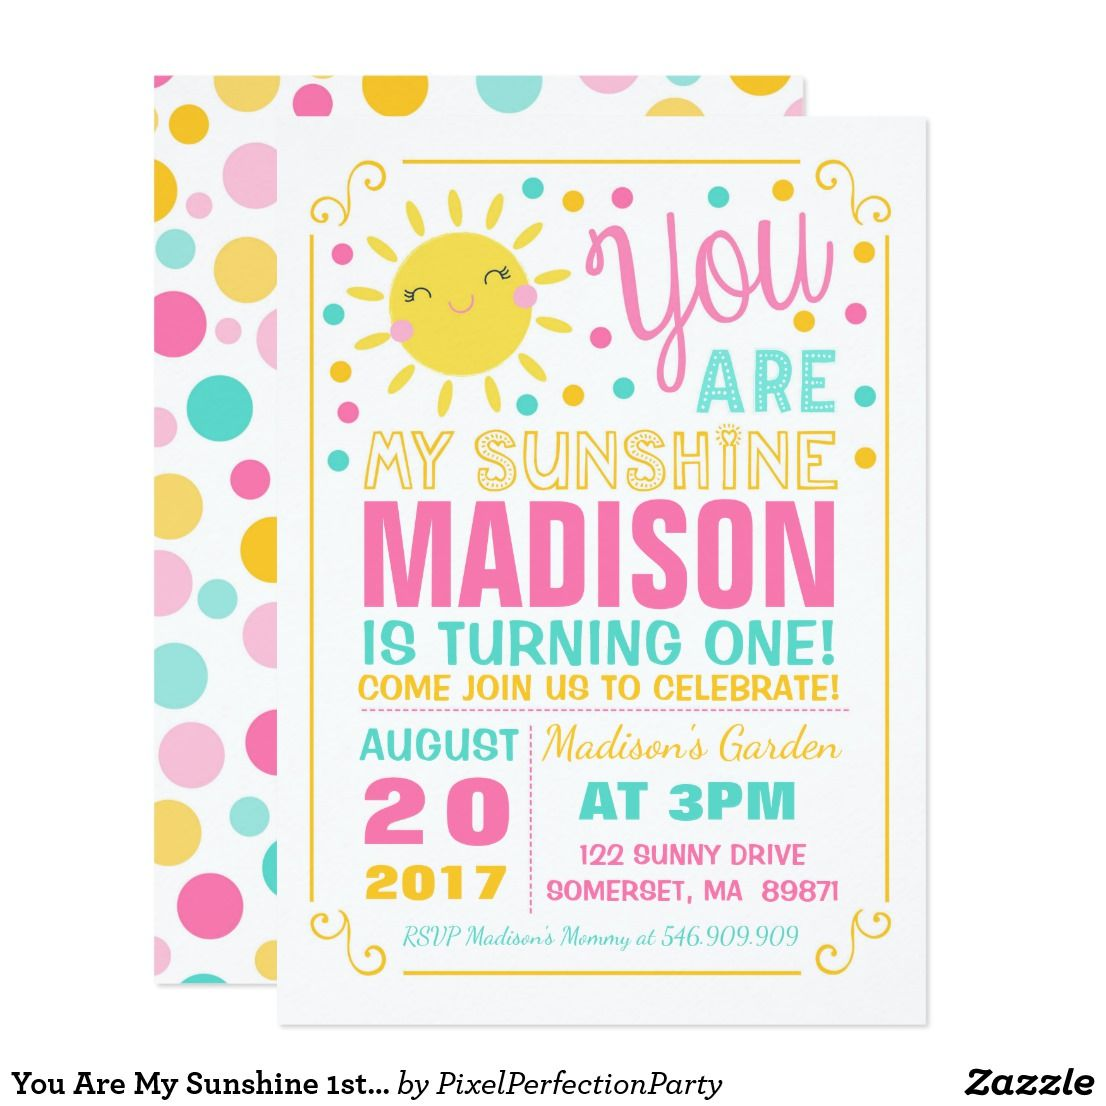 You are my sunshine 1st birthday party invitation stopboris Choice Image